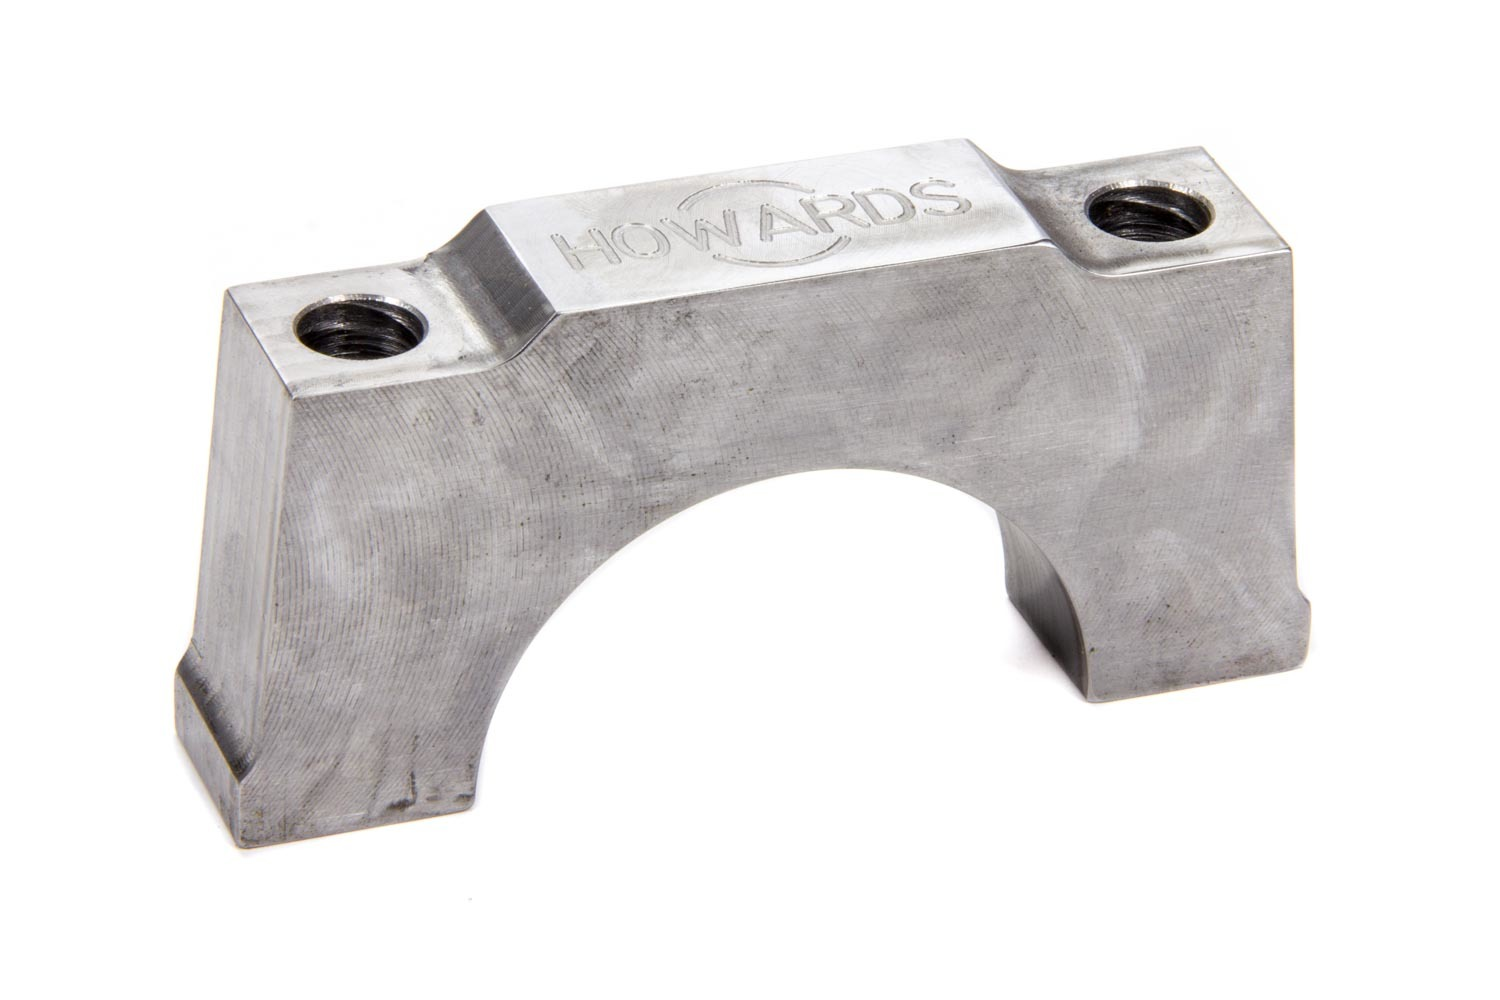 Howards Racing Components H350F Main Cap, 2-Bolt, Front, Straight Bolts, Billet Steel, 350 Journal, Small Block Chevy, Each